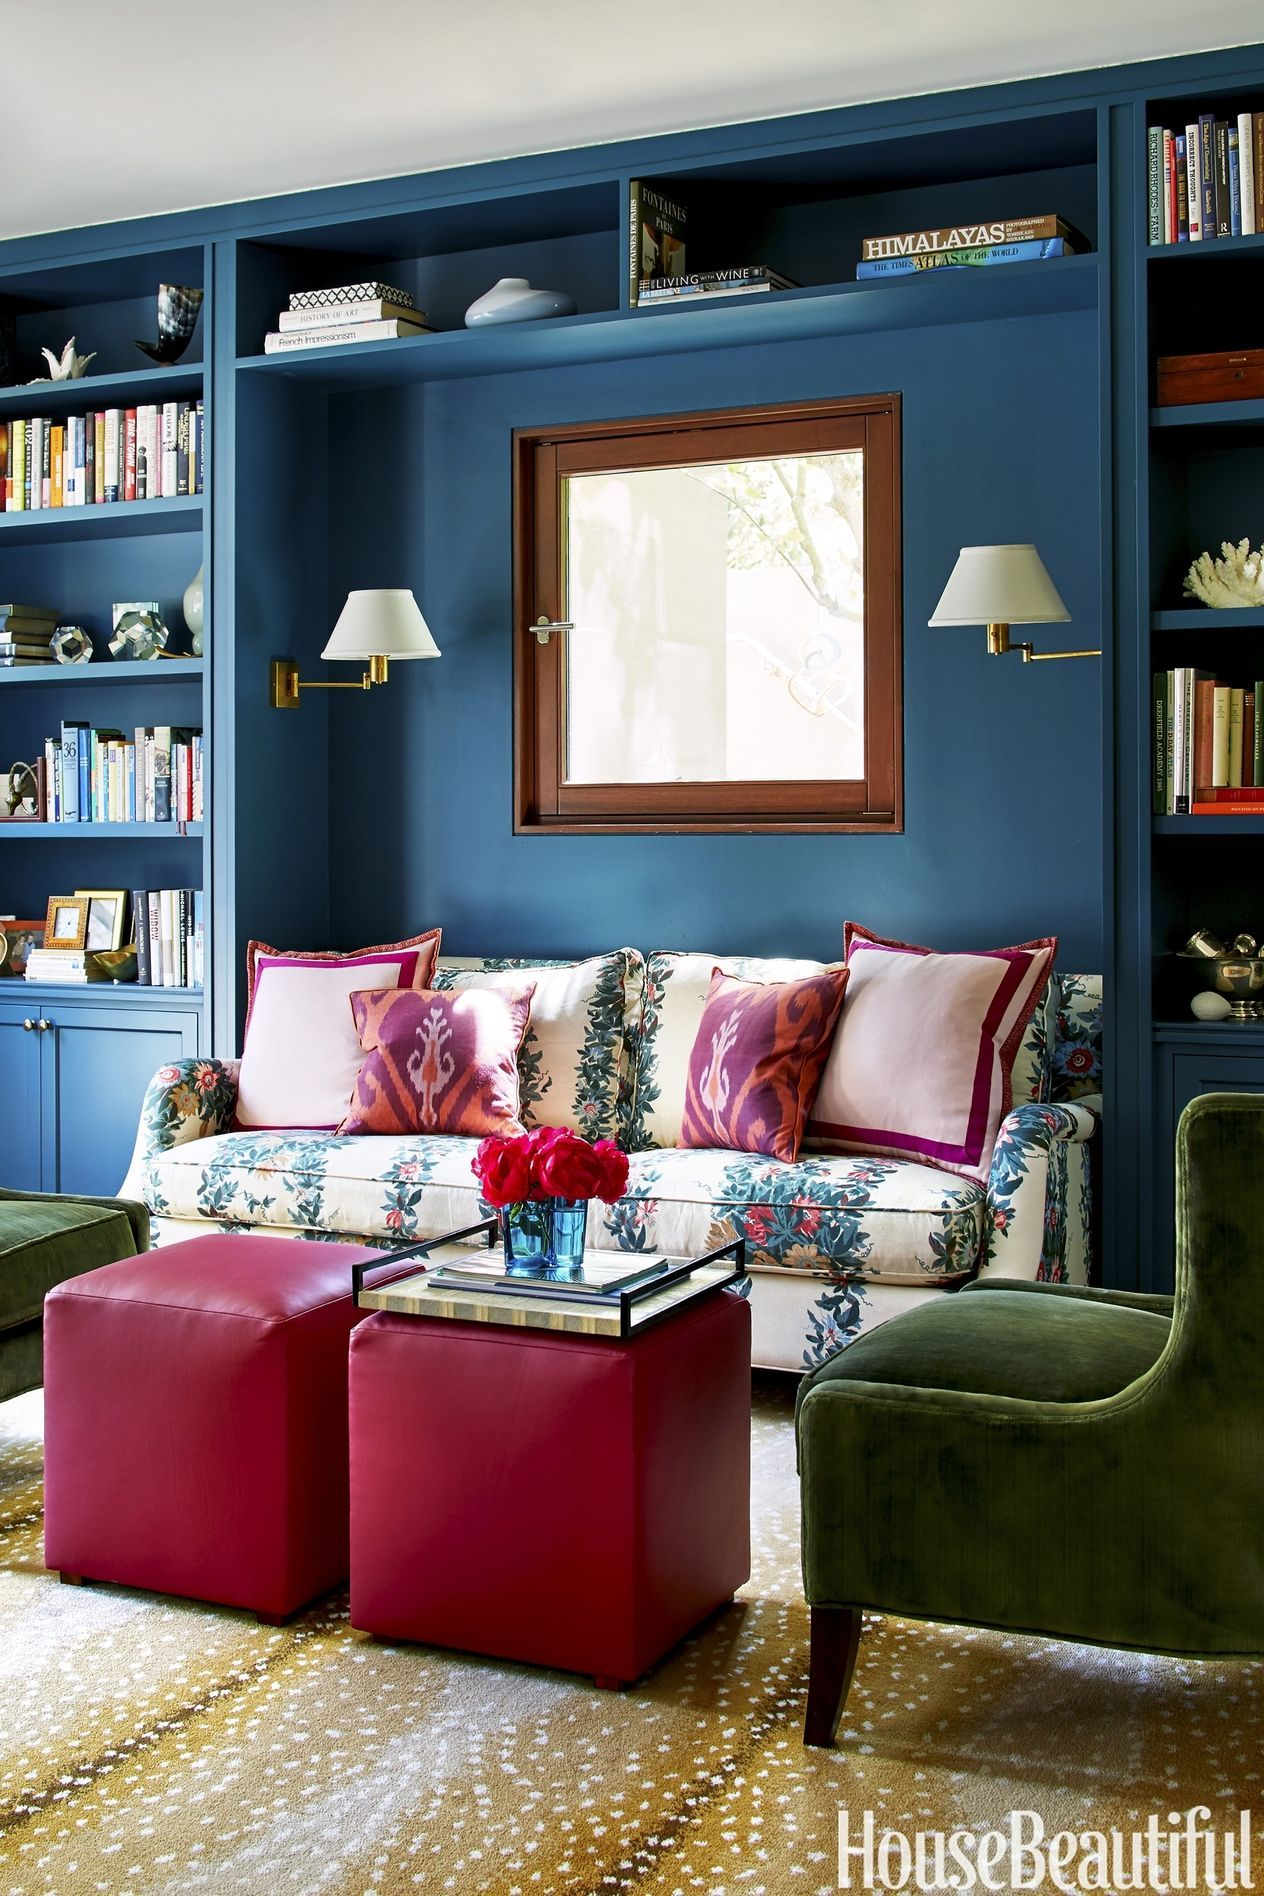 17 Best Small Living Room Ideas - How to Decorate a Small ... on Beautiful Bedroom Ideas For Small Rooms  id=33173